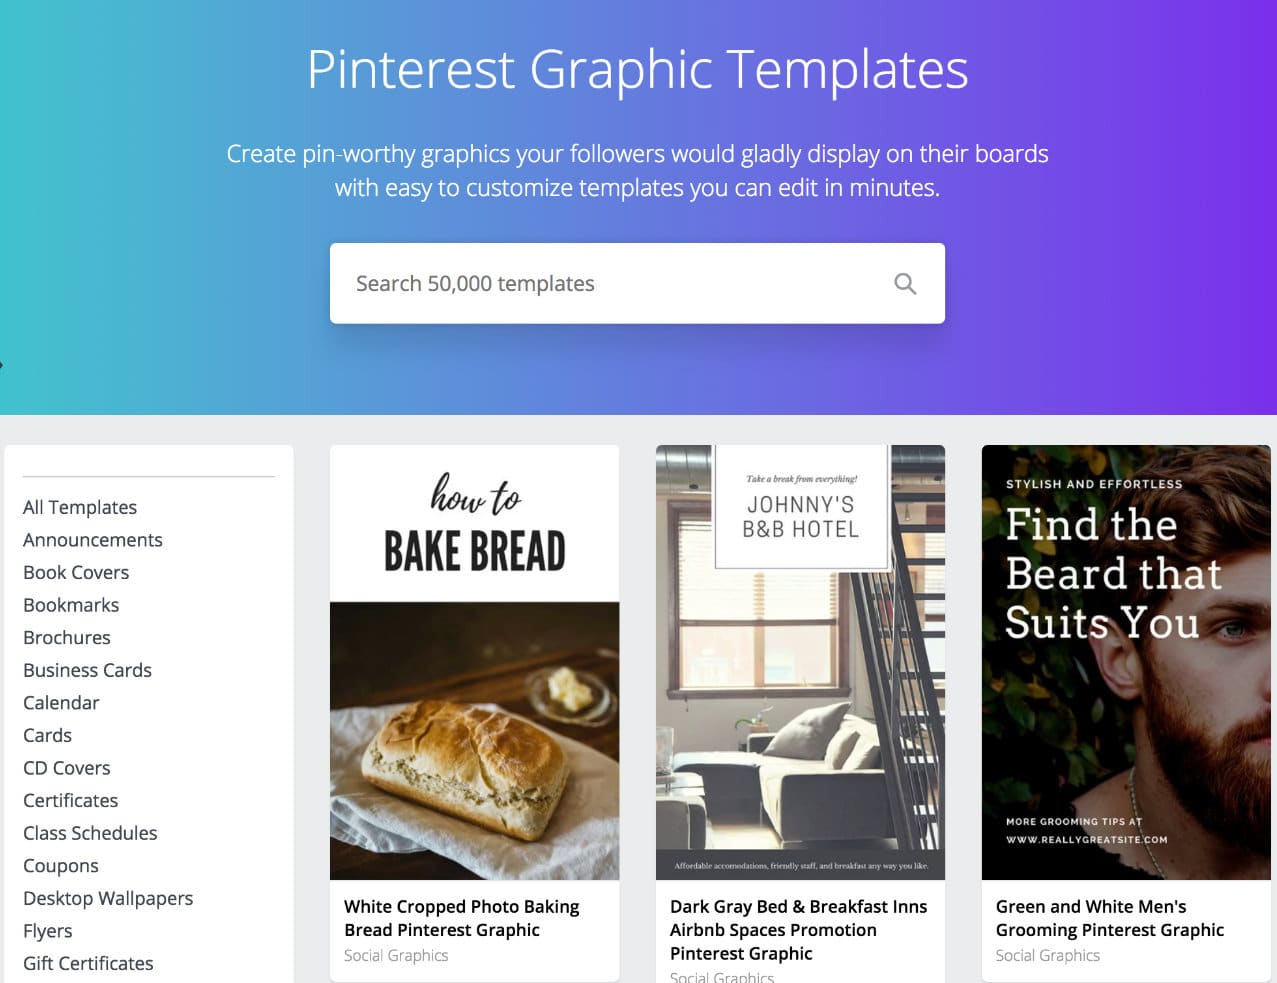 Pinterest graphic templates